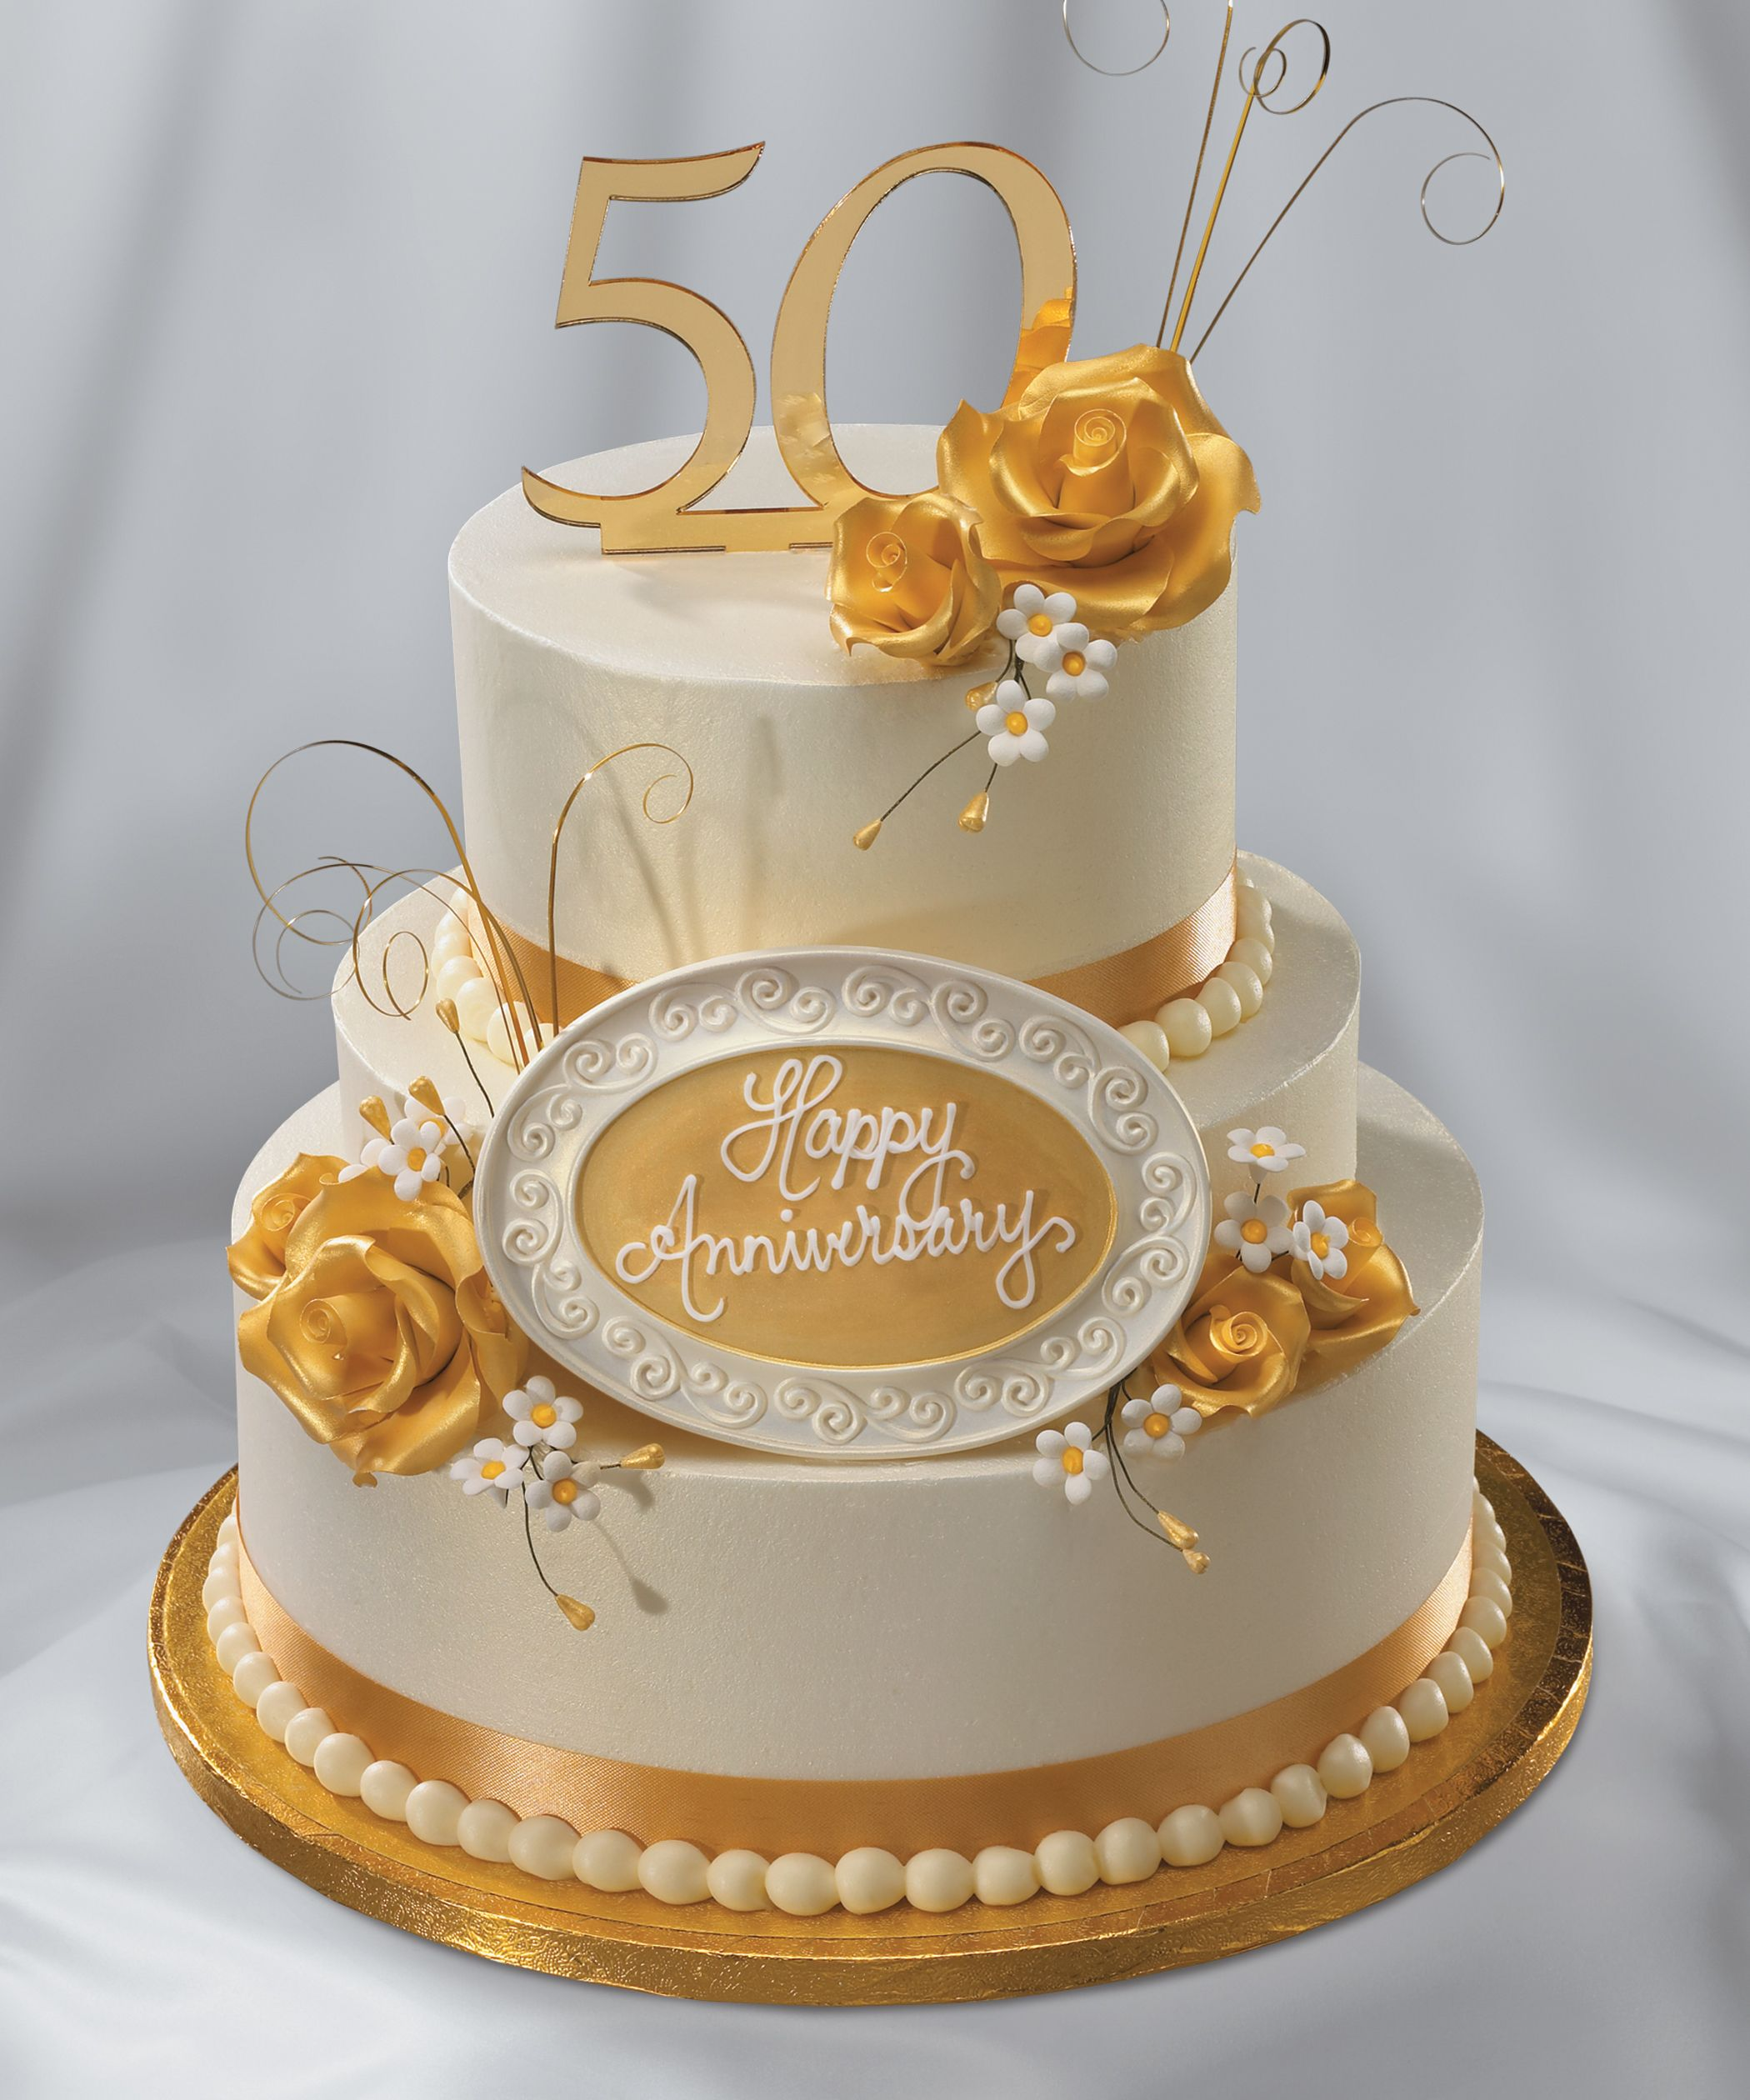 A golden anniversary cake to celebrate 50 years of